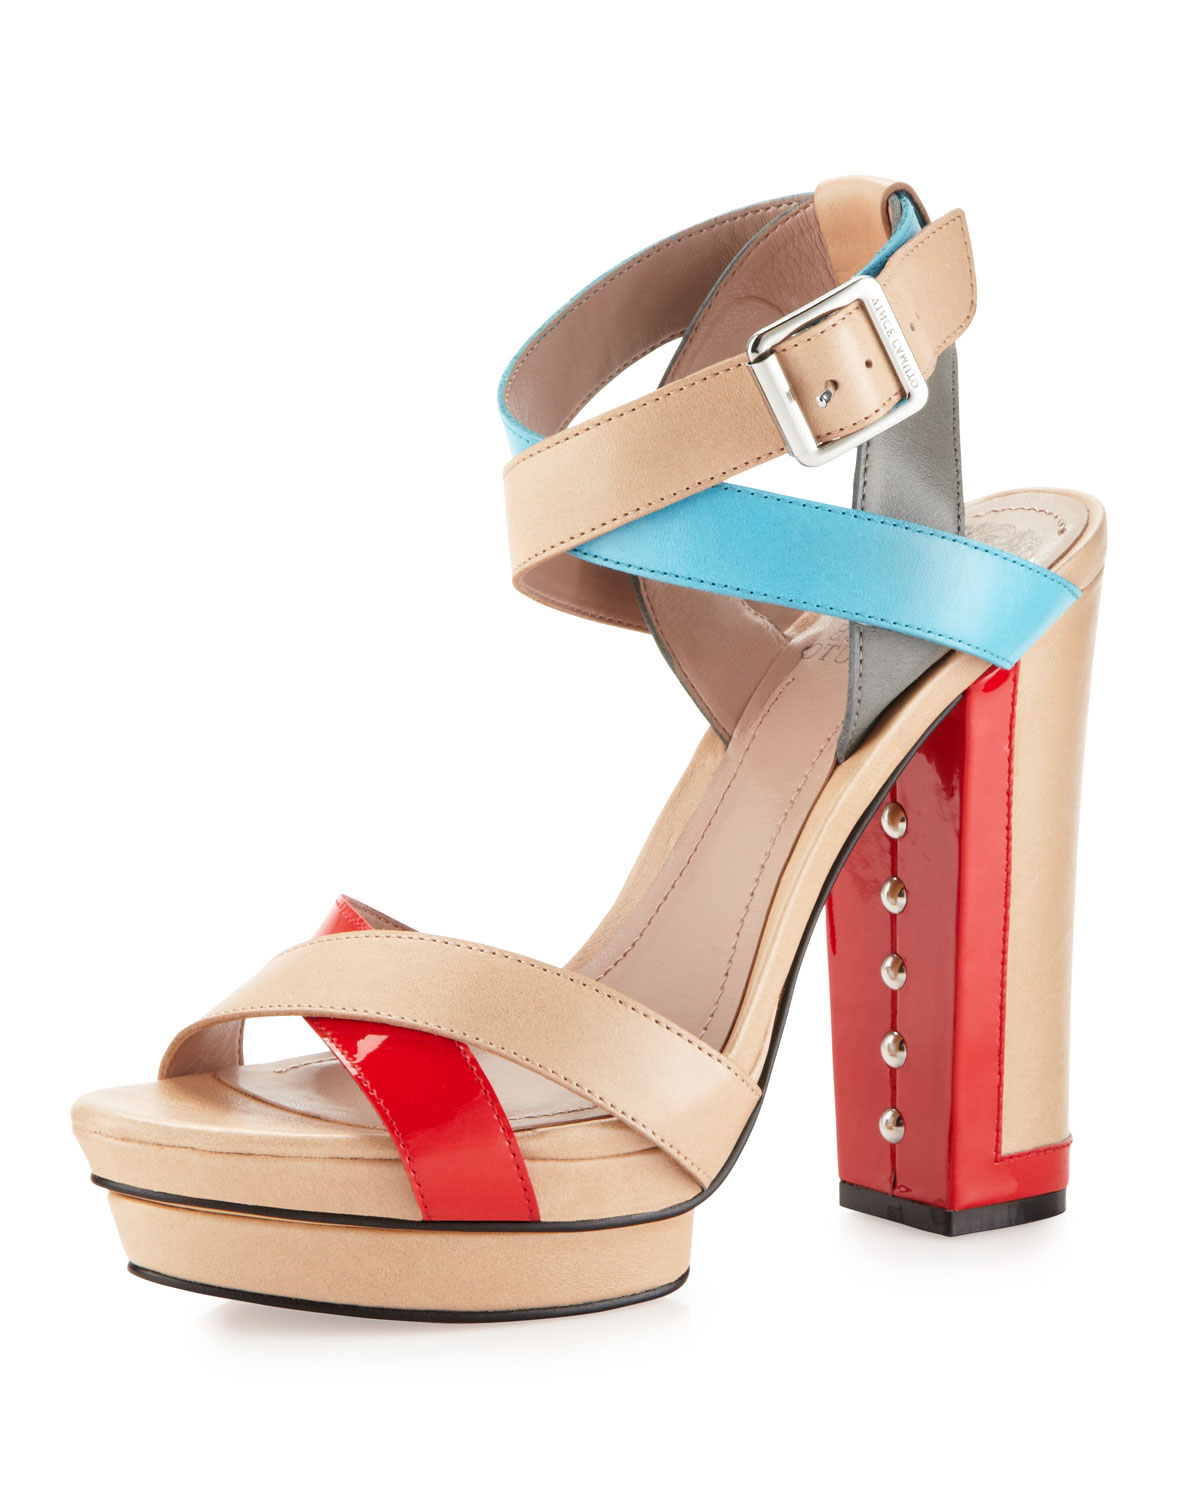 6398fdd3ea5 Lyst - Vince Camuto Pamir Colorblock Thick Heel Platform Sandal in Blue